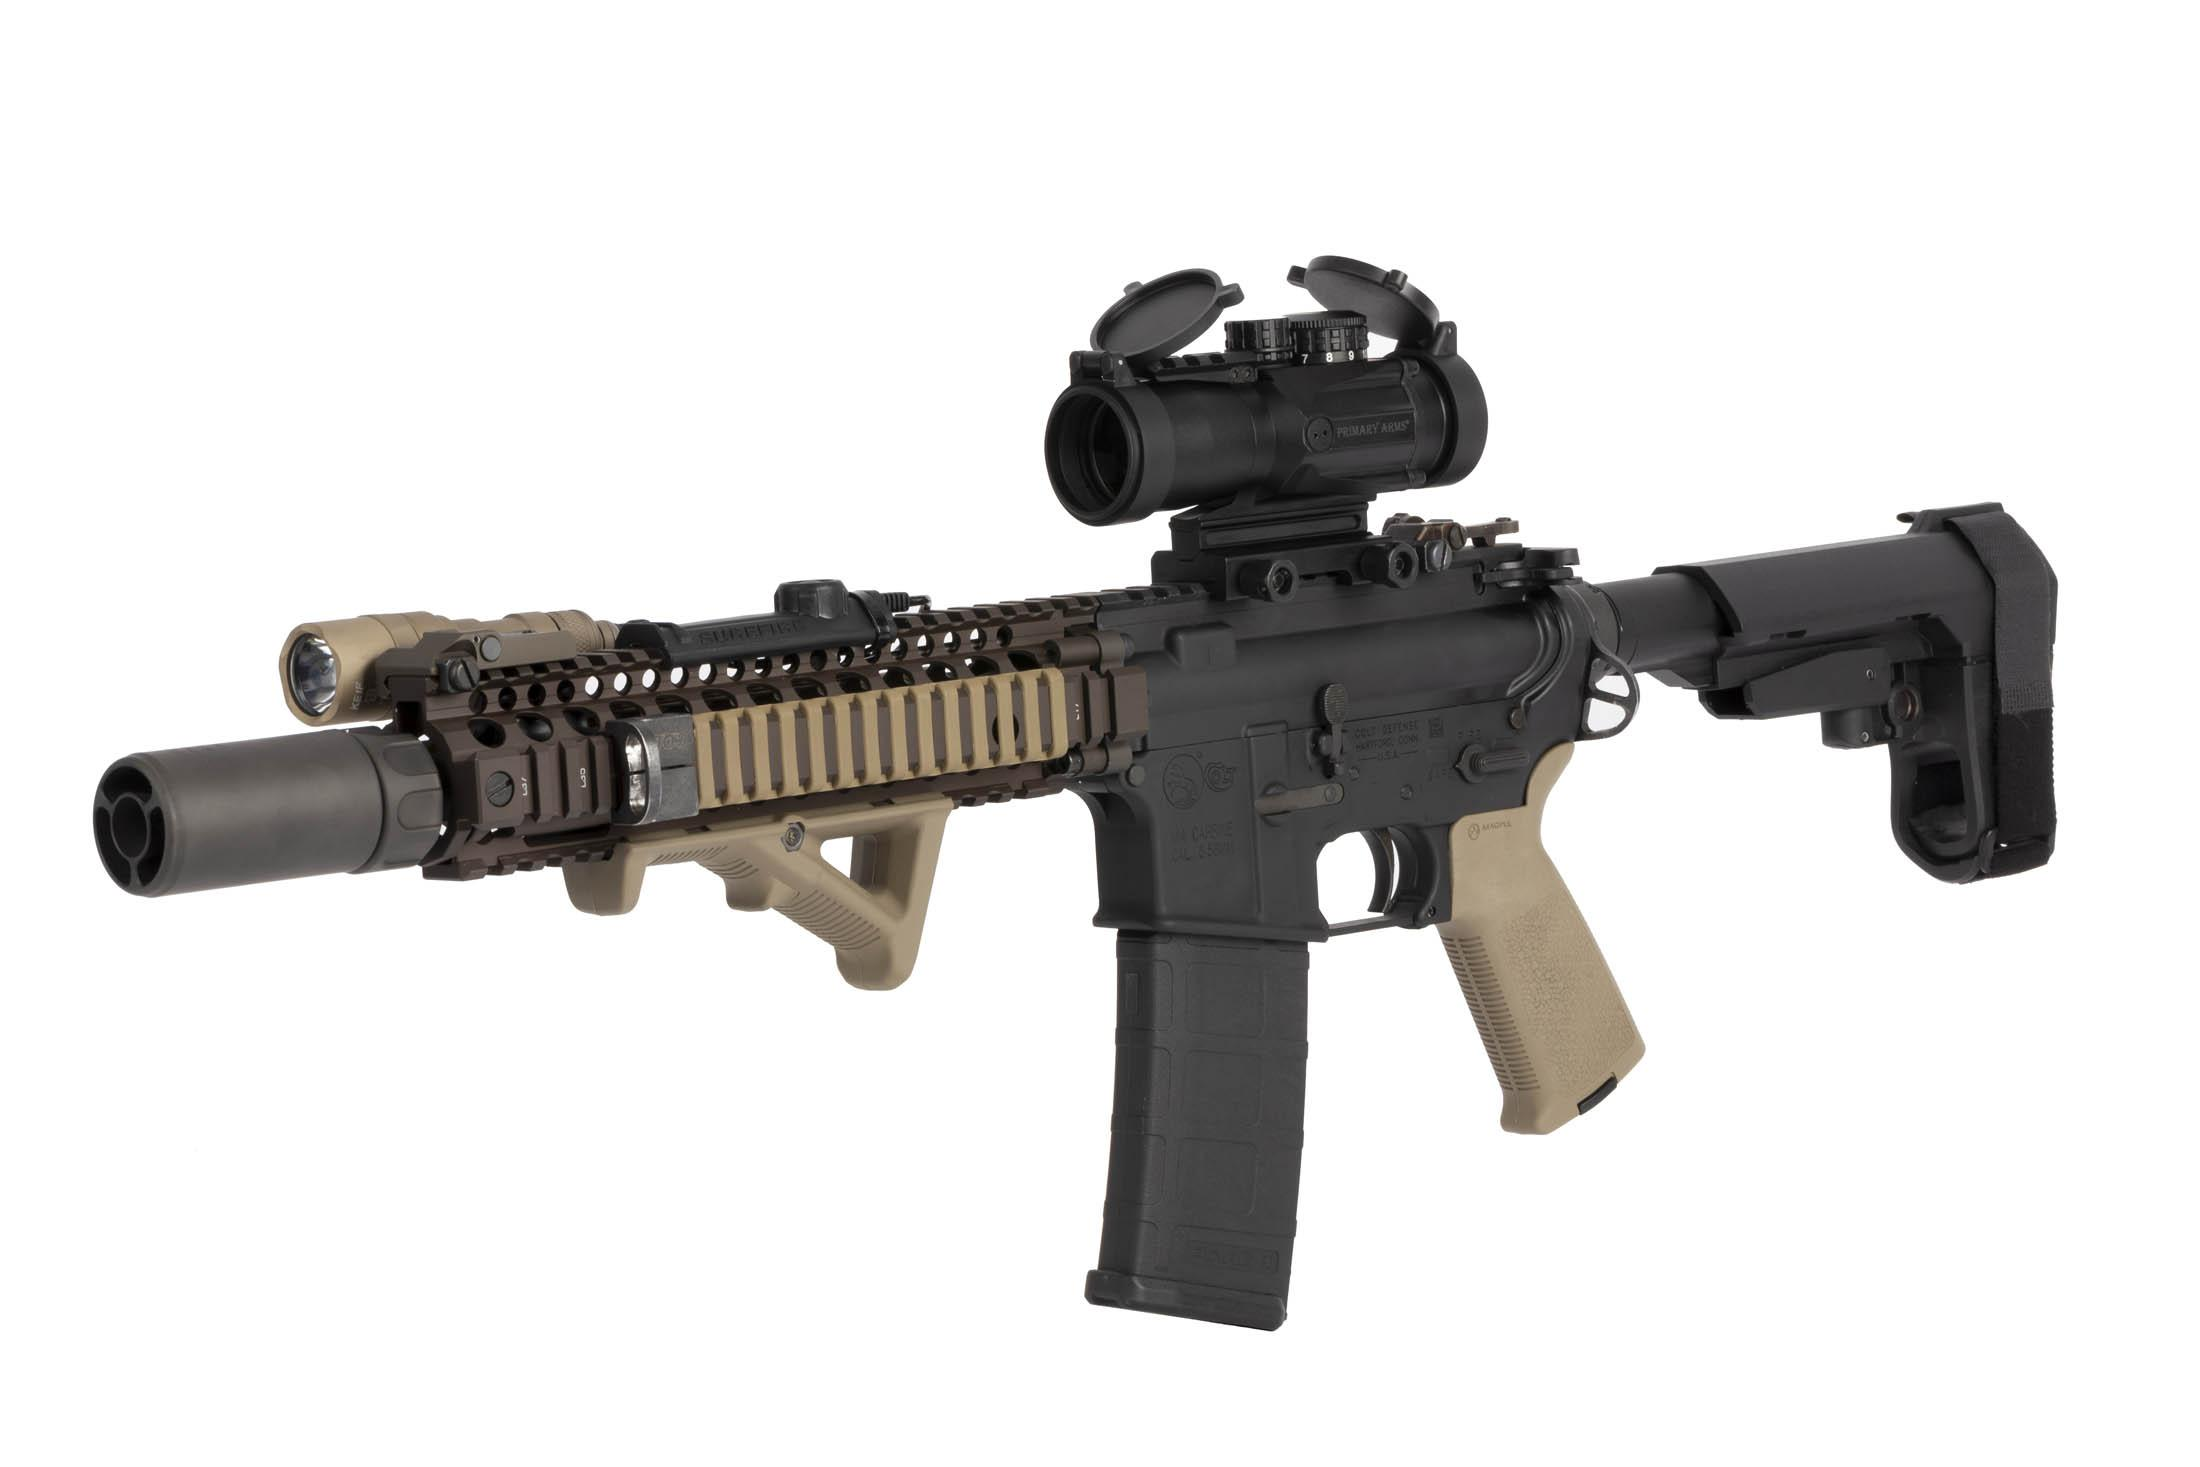 Primary Arms 3X Compact Prism Scope with ACSS CQB-M2 5.56 Reticle and spacer is perfect for use on AR-15 and AR-308 rifles